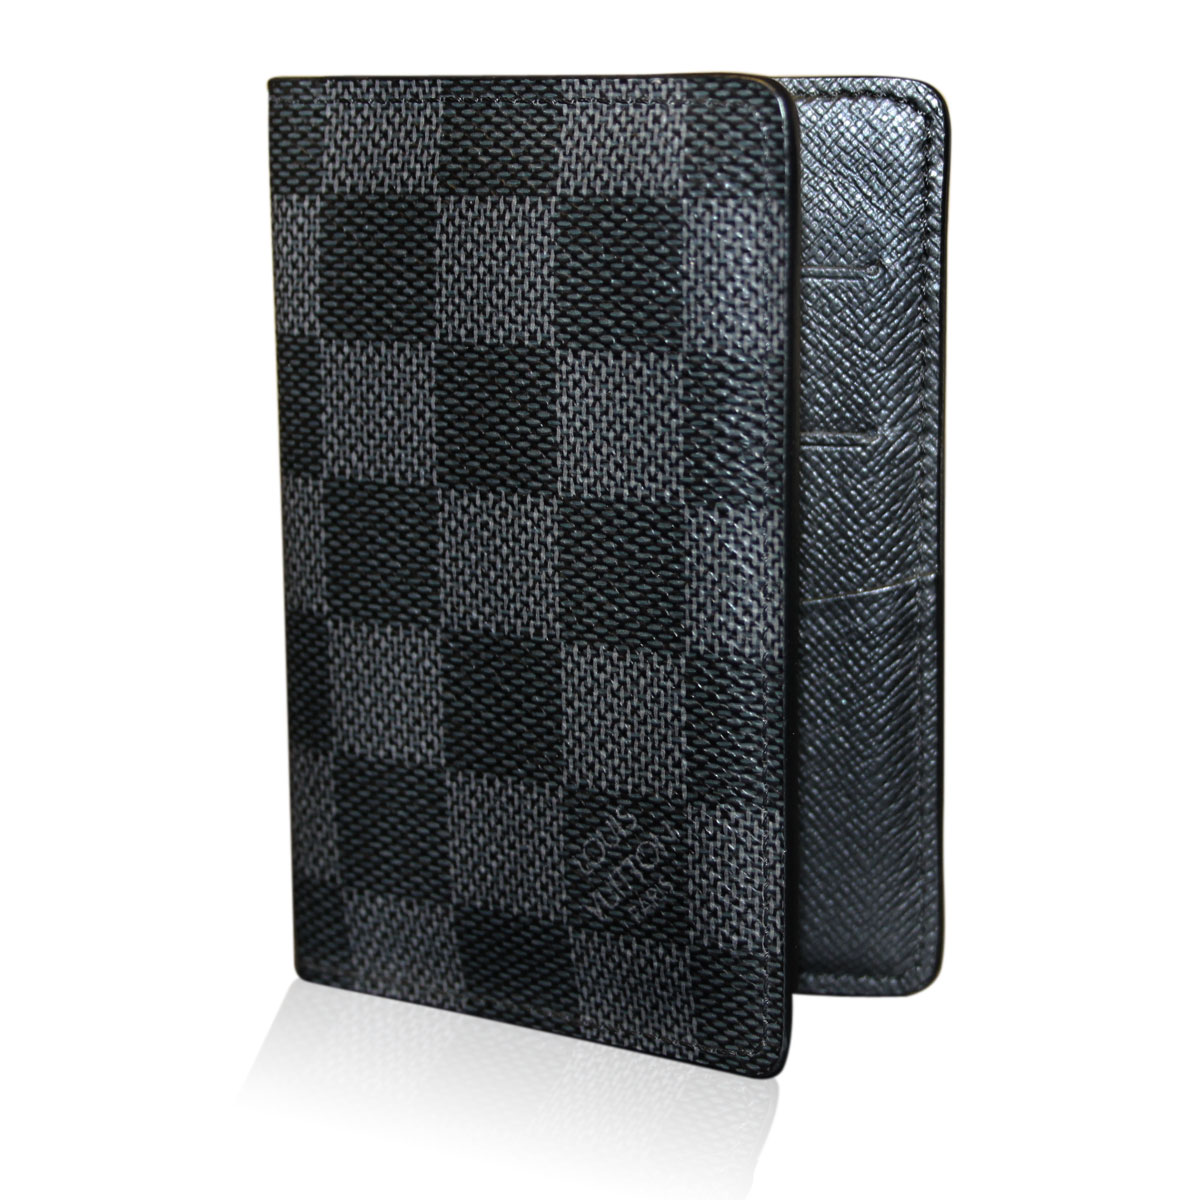 Louis Vuitton Mens Card Holder Wallet - Best Photo Wallet ...